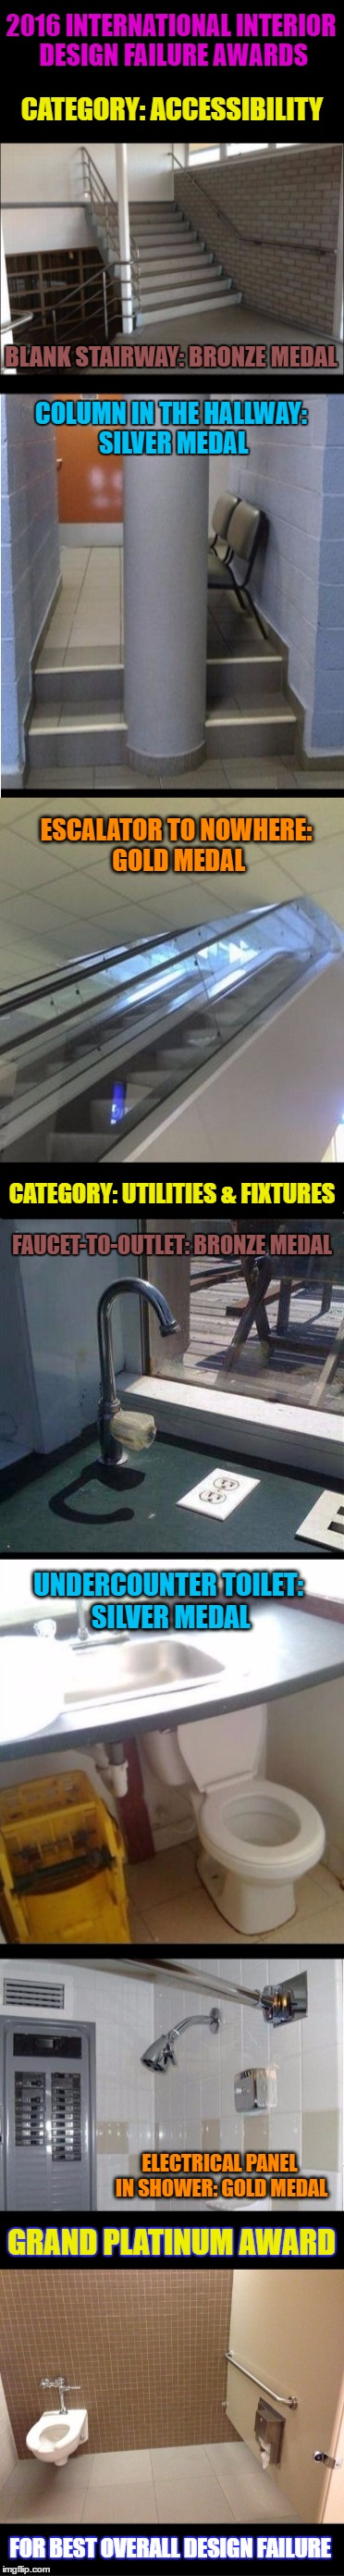 Design Failure Awards | 2016 INTERNATIONAL INTERIOR DESIGN FAILURE AWARDS CATEGORY: ACCESSIBILITY BLANK STAIRWAY: BRONZE MEDAL COLUMN IN THE HALLWAY: SILVER MEDAL E | image tagged in funny memes,wmp,fail,fails,epic fail,failure | made w/ Imgflip meme maker